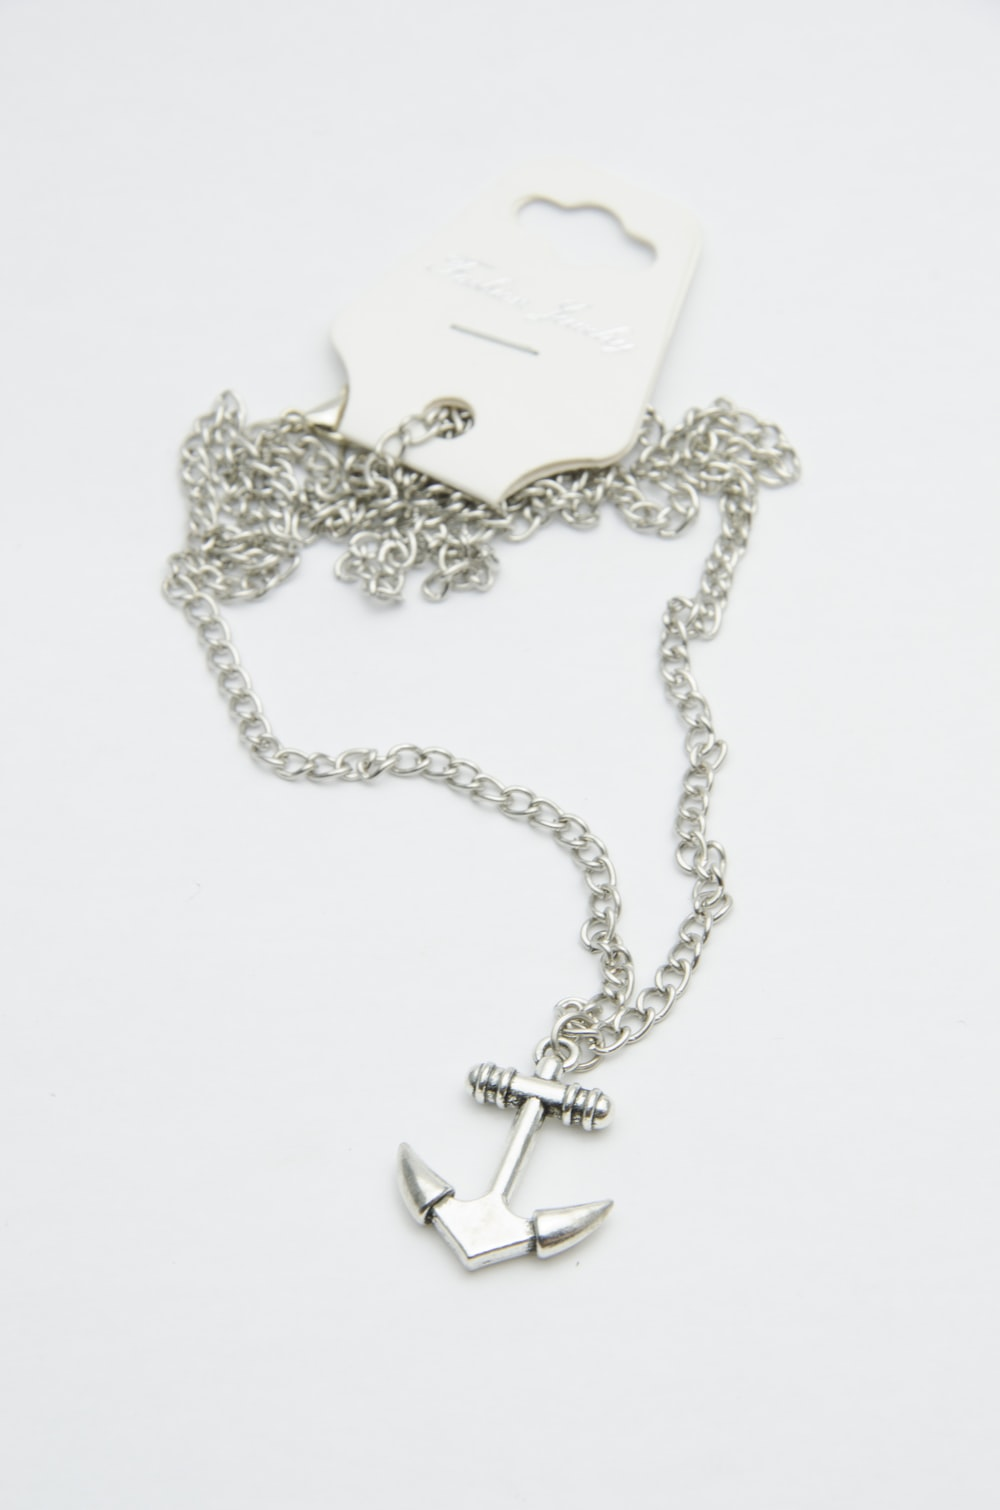 silver-colored pendant necklace